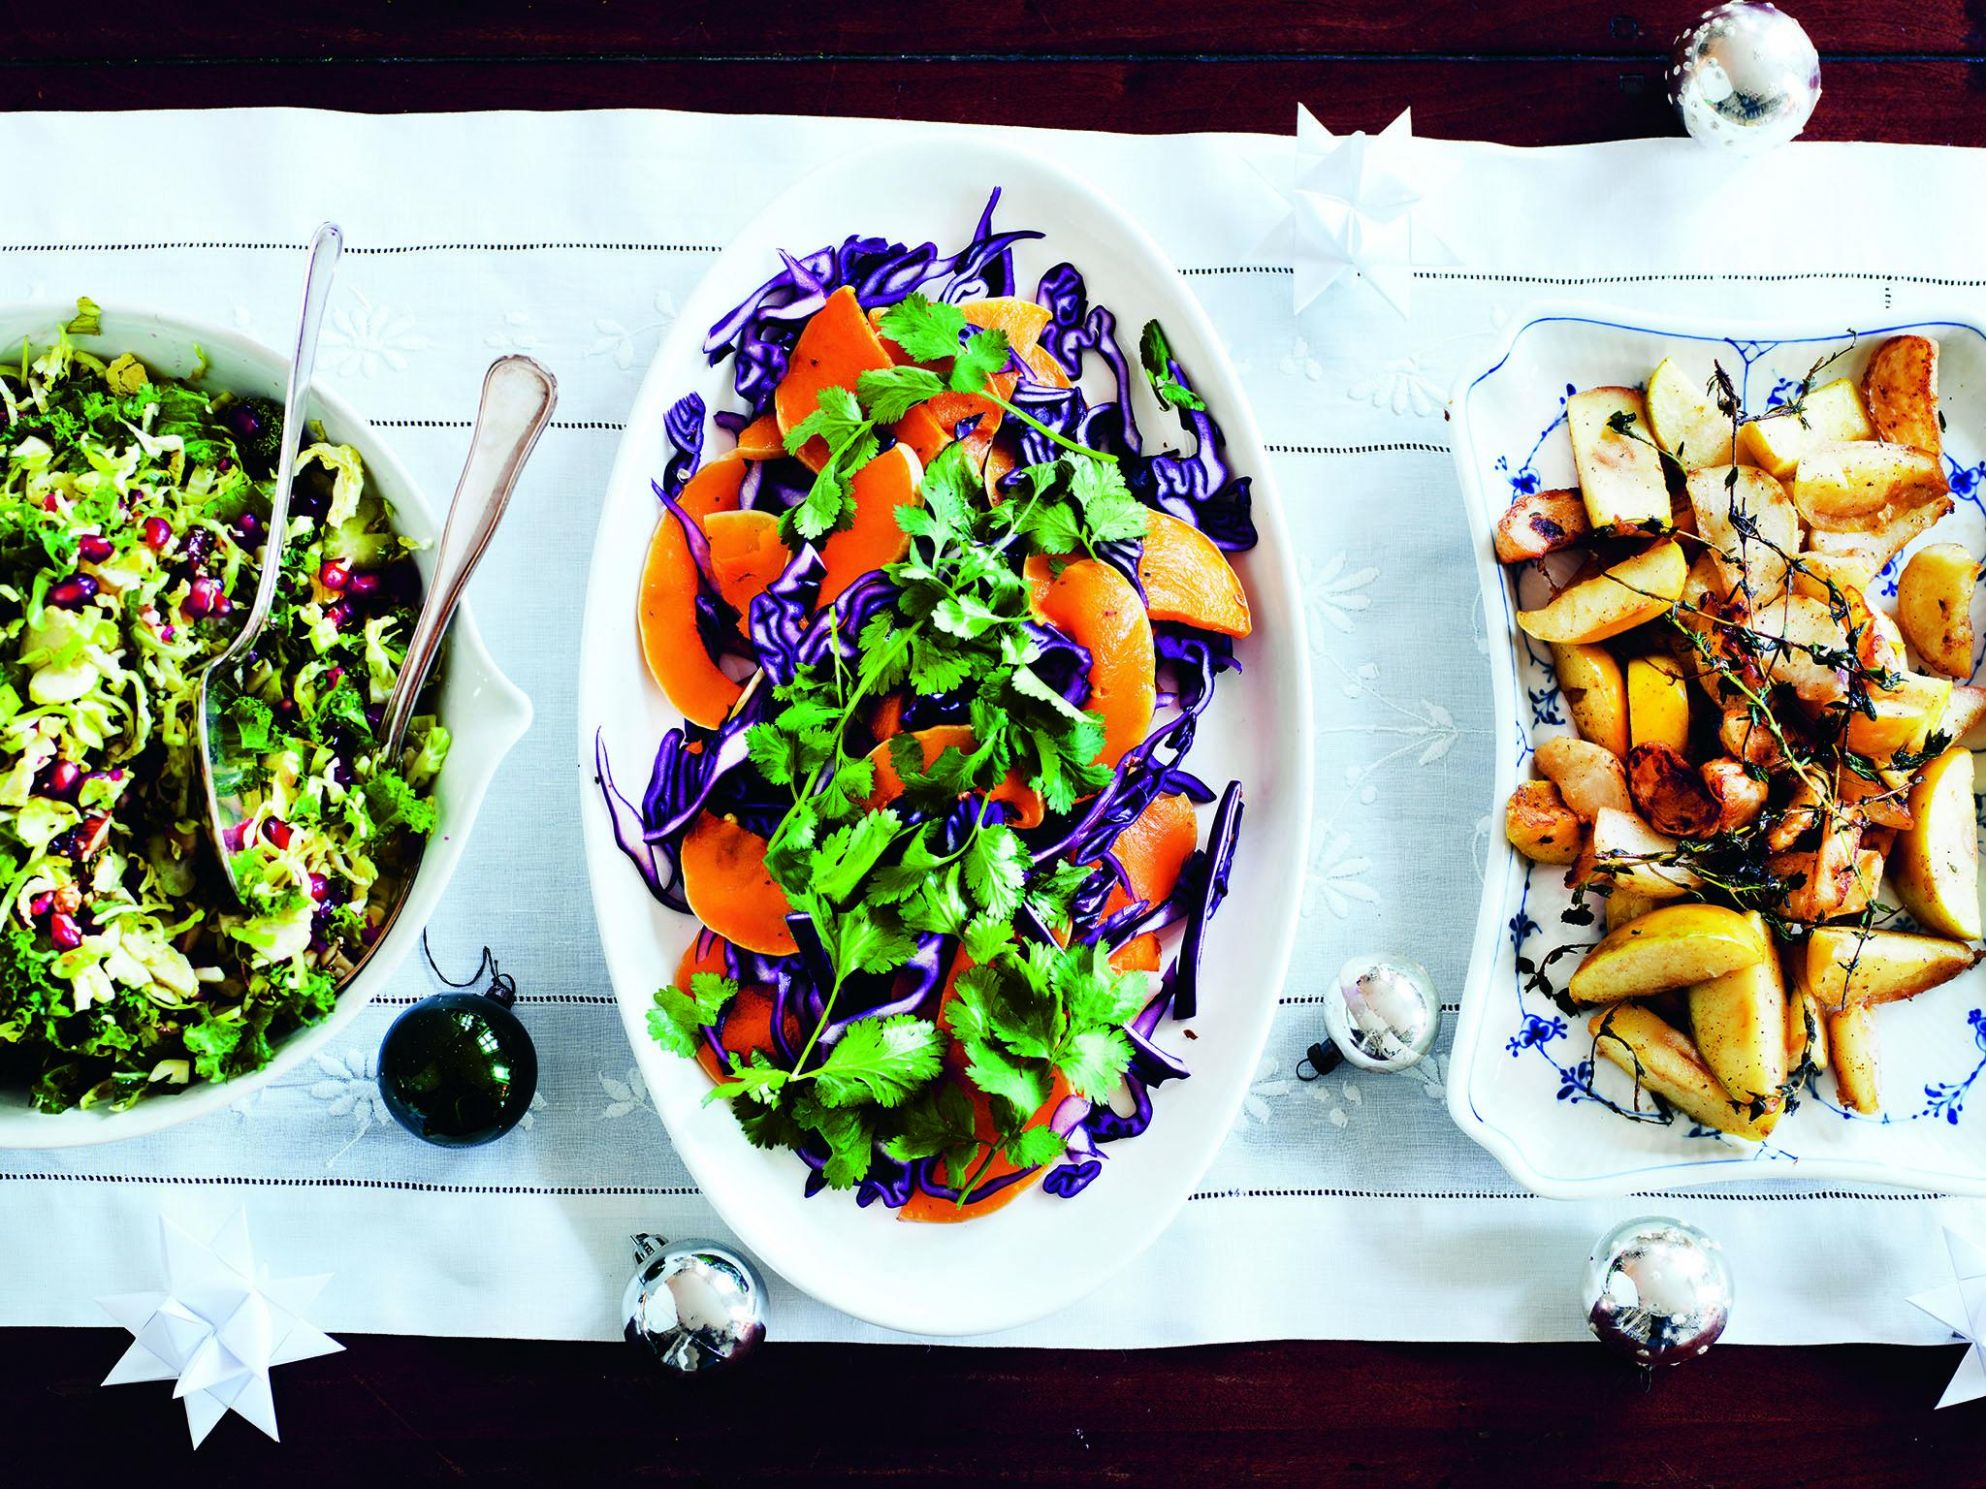 How to make healthy winter salad recipes   The Independent - Healthy Recipes Uk